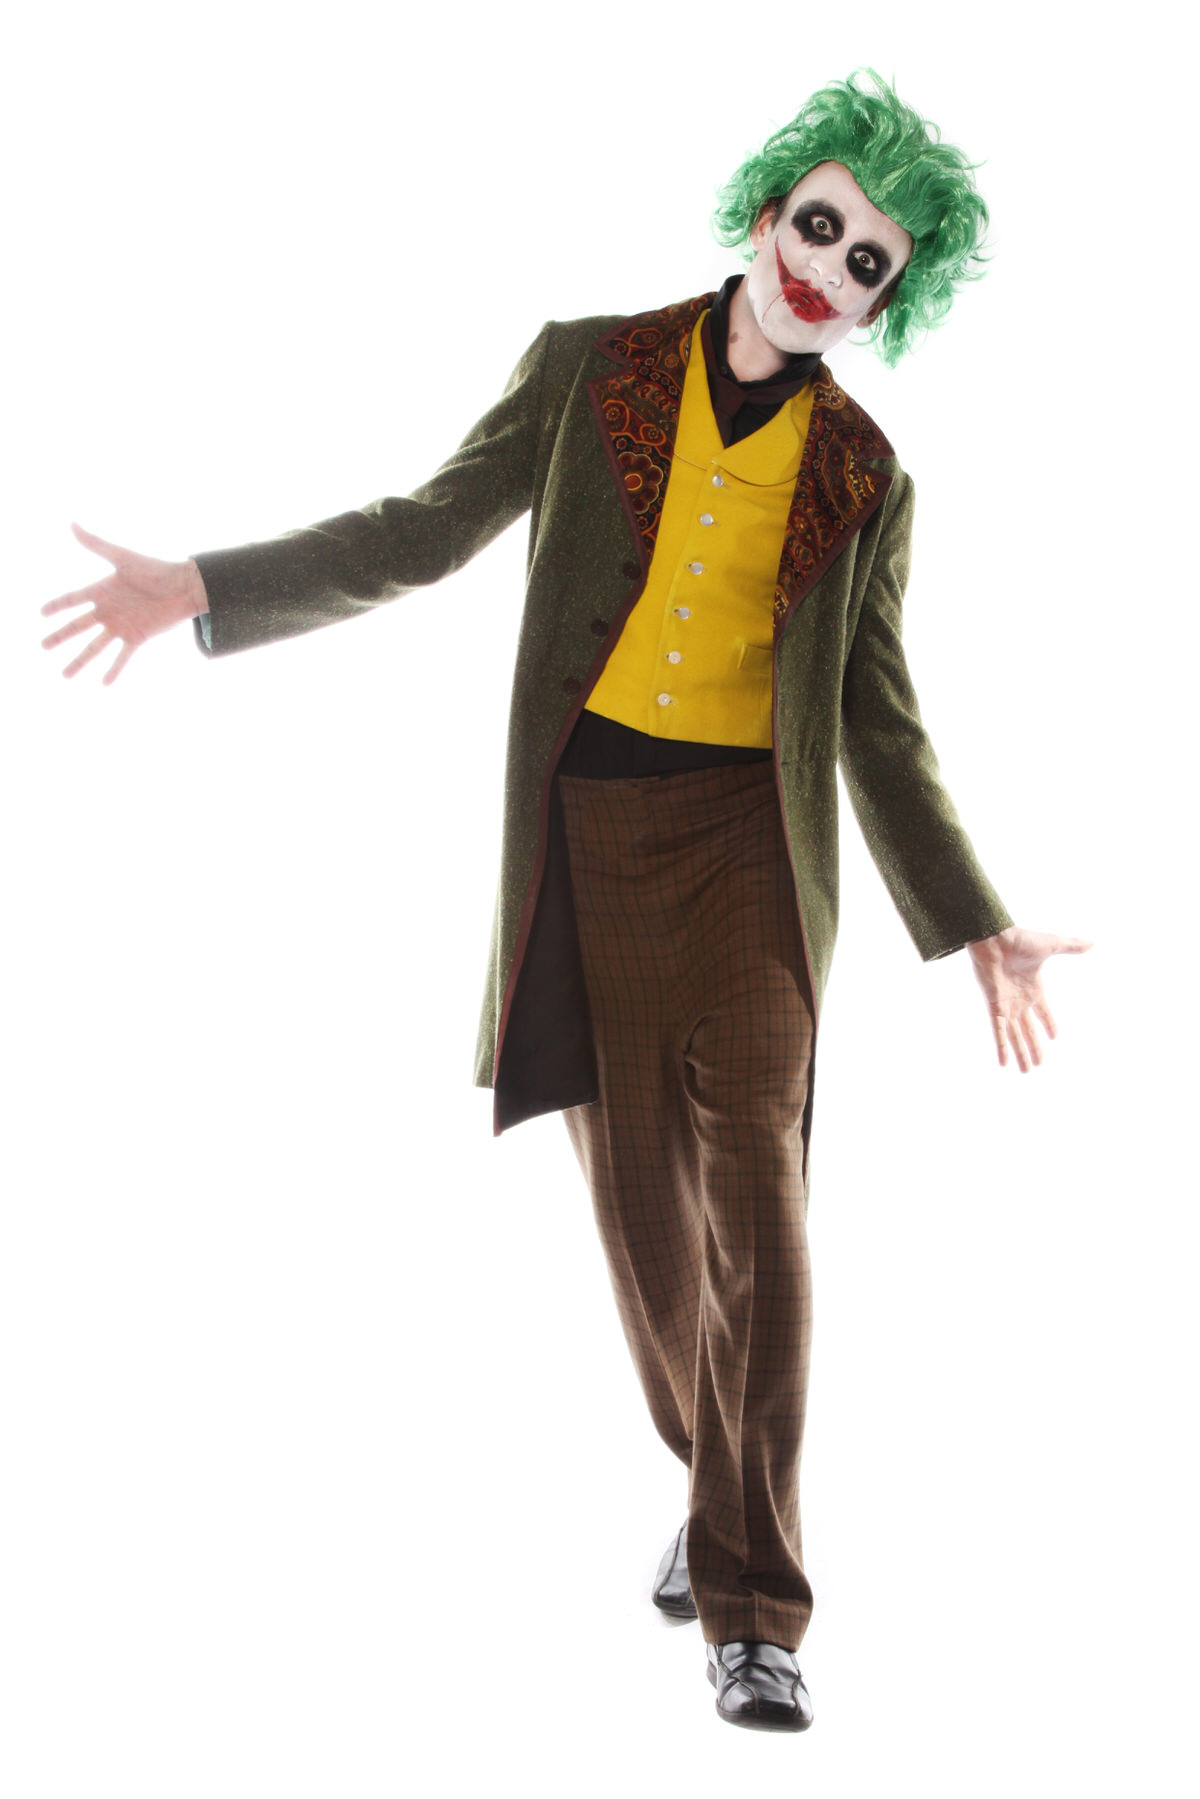 JOKER VILLAIN STYLE COSTUME W GREEN WIG